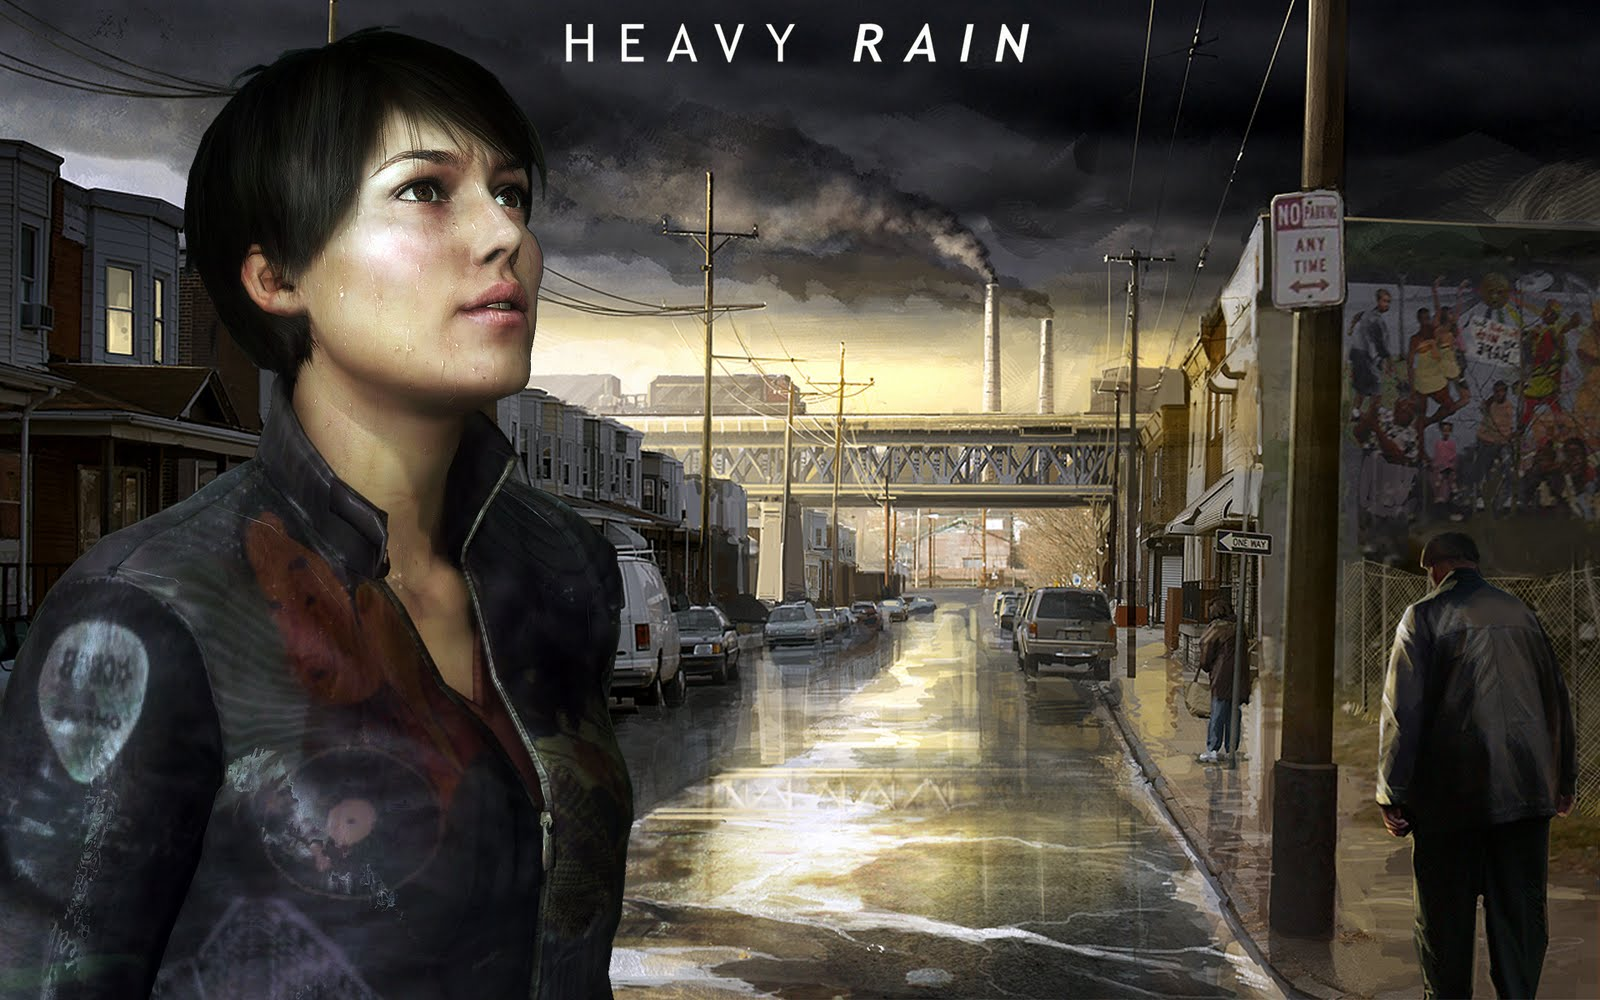 Heavy rain origami killer hd wallpapers wallpapers heavy rain origami killer hd wallpapers jeuxipadfo Image collections